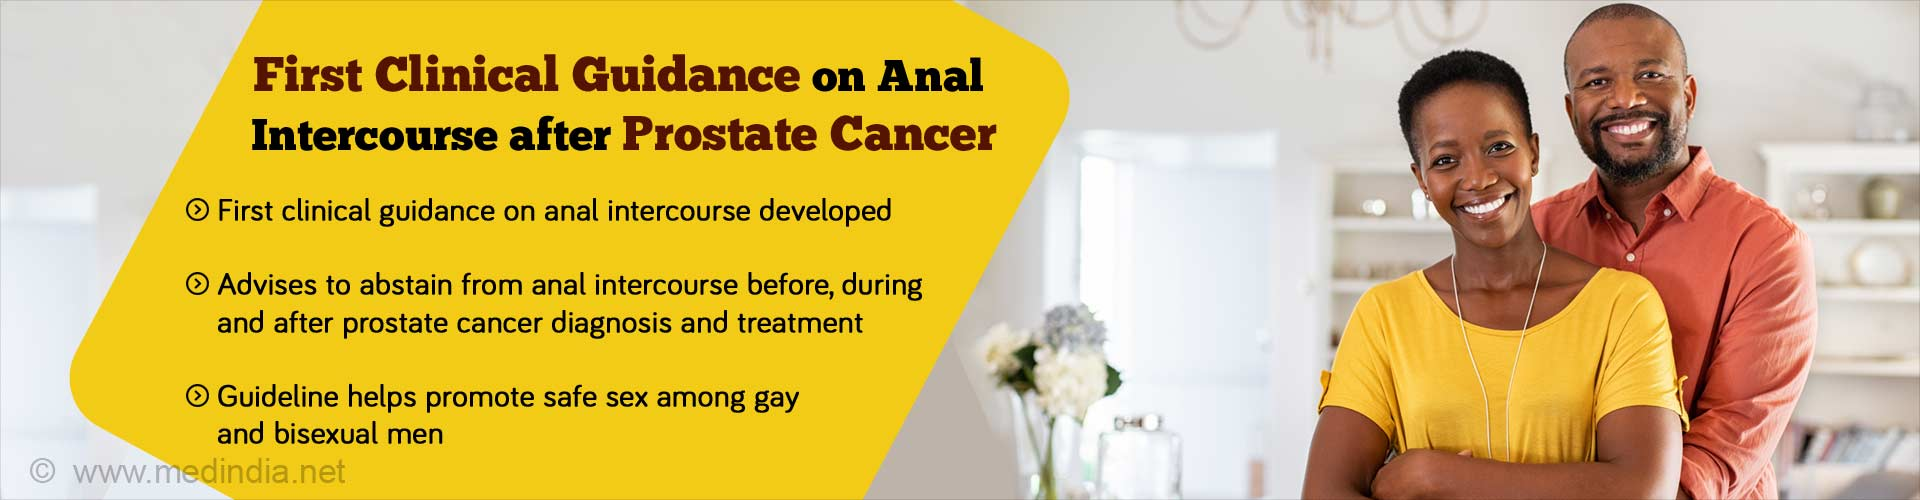 First clinical guidance on anal intercourse after prostate cancer. First clinical guidance on anal intercourse developed. Advises to abstain from anal intercourse before, during and after prostate cancer diagnosis and treatment. Guideline helps promote safe sex among gay and bisexual men.